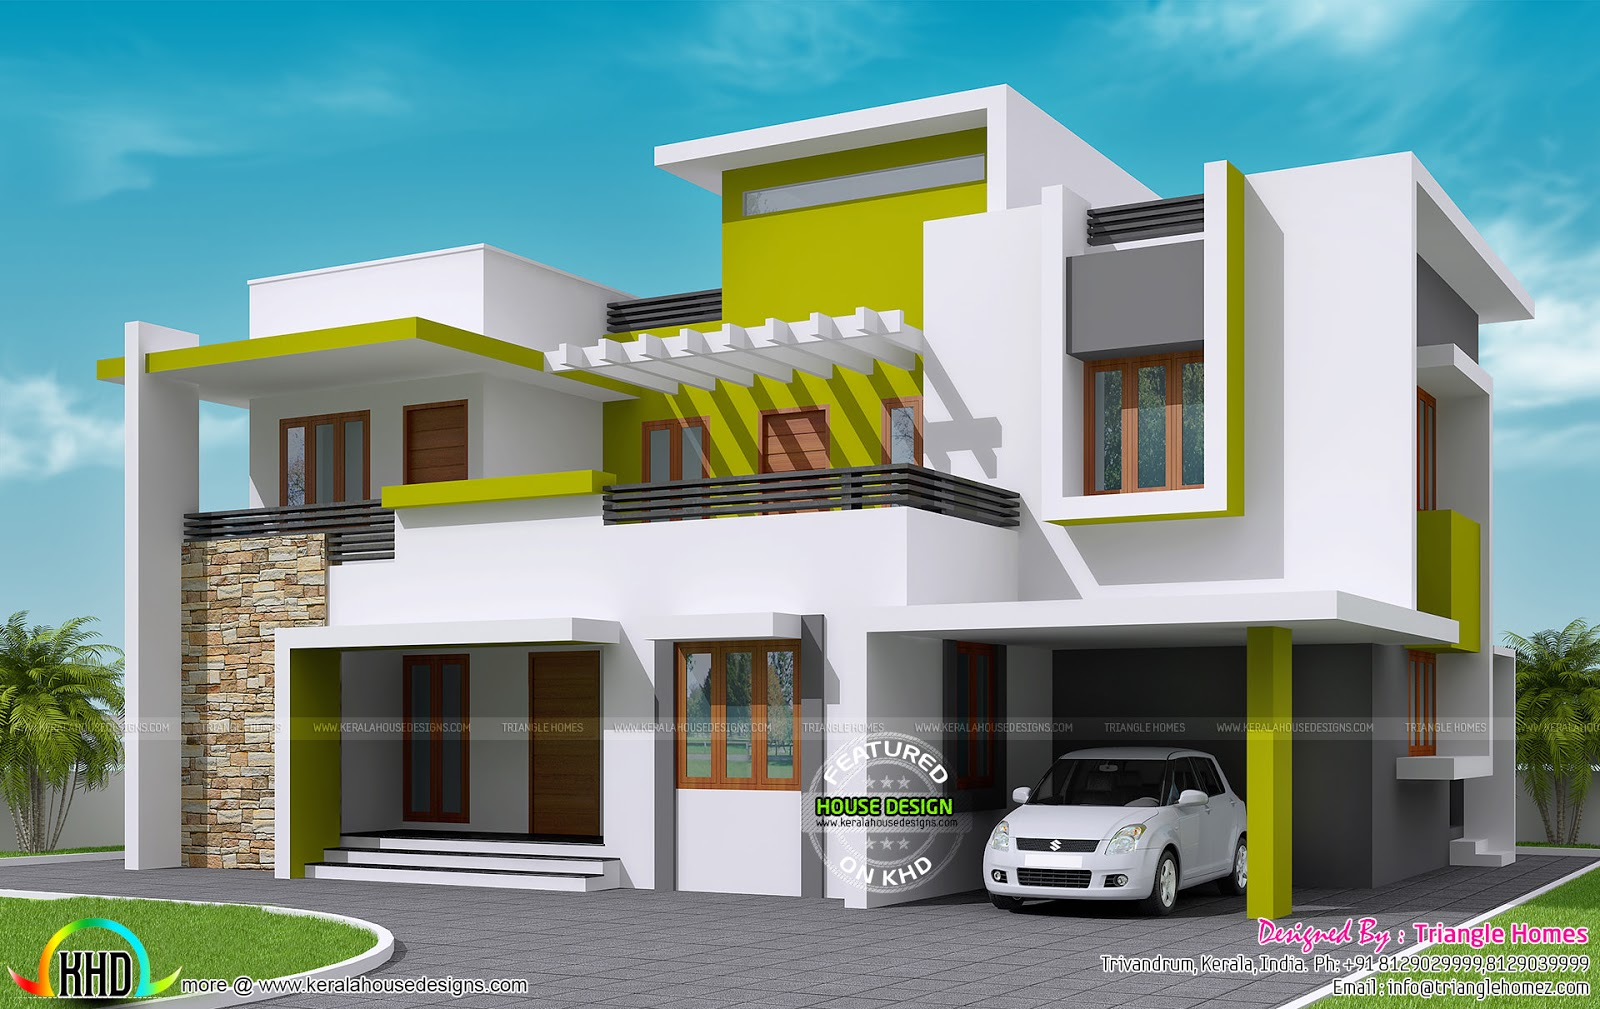 232 sq m contemporary house kerala home design and floor for Modern design homes for sale